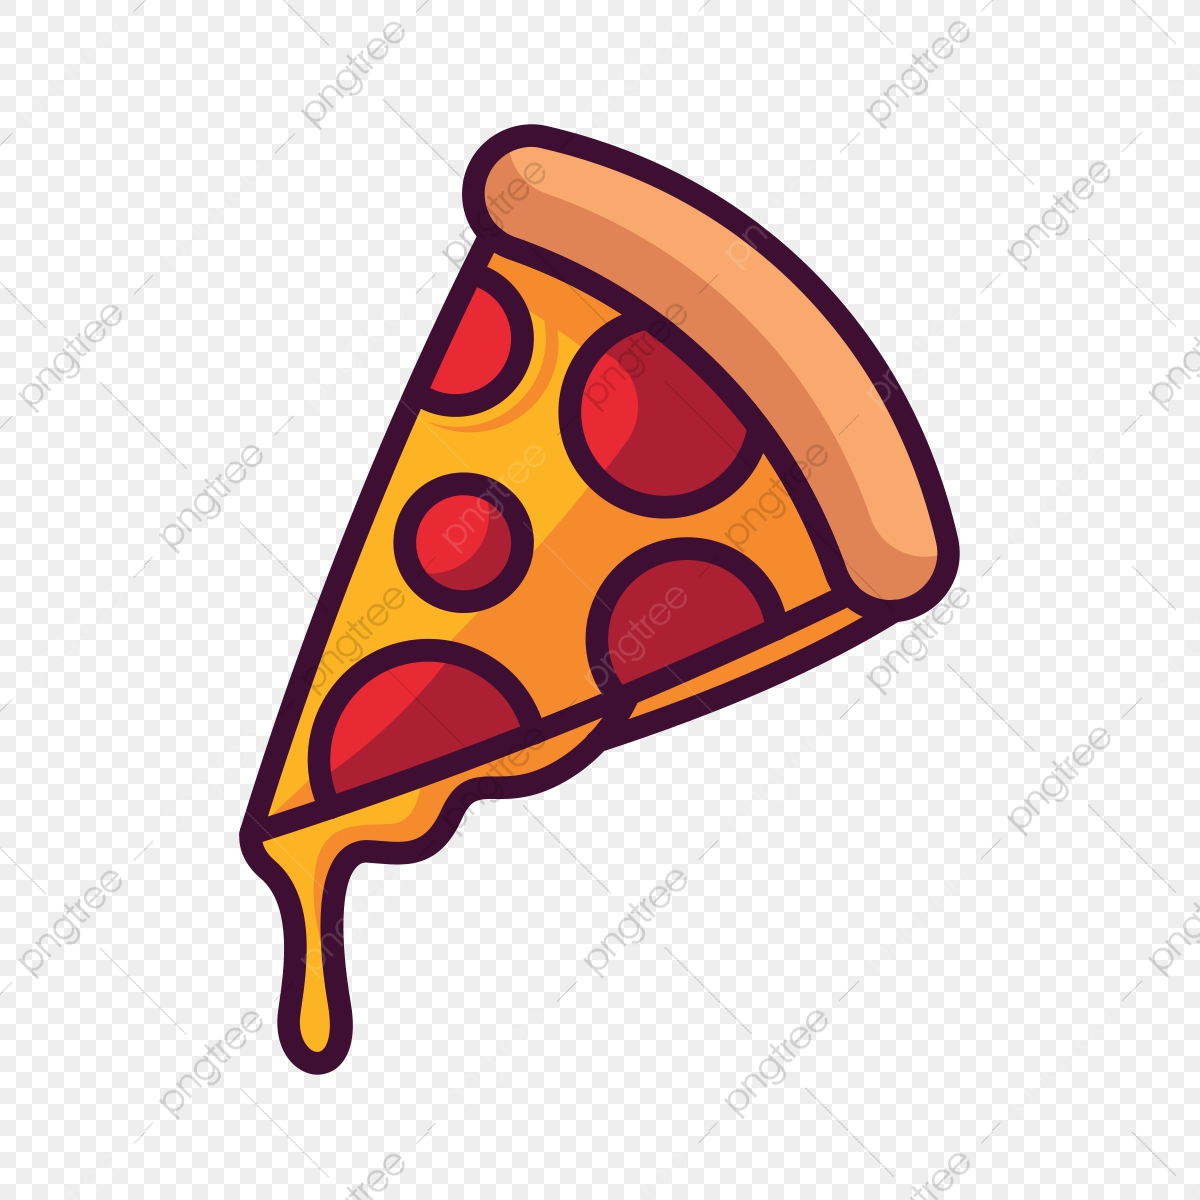 Pizza Clipart Download Free Transparent Png Format Clipart Images On Pngtree